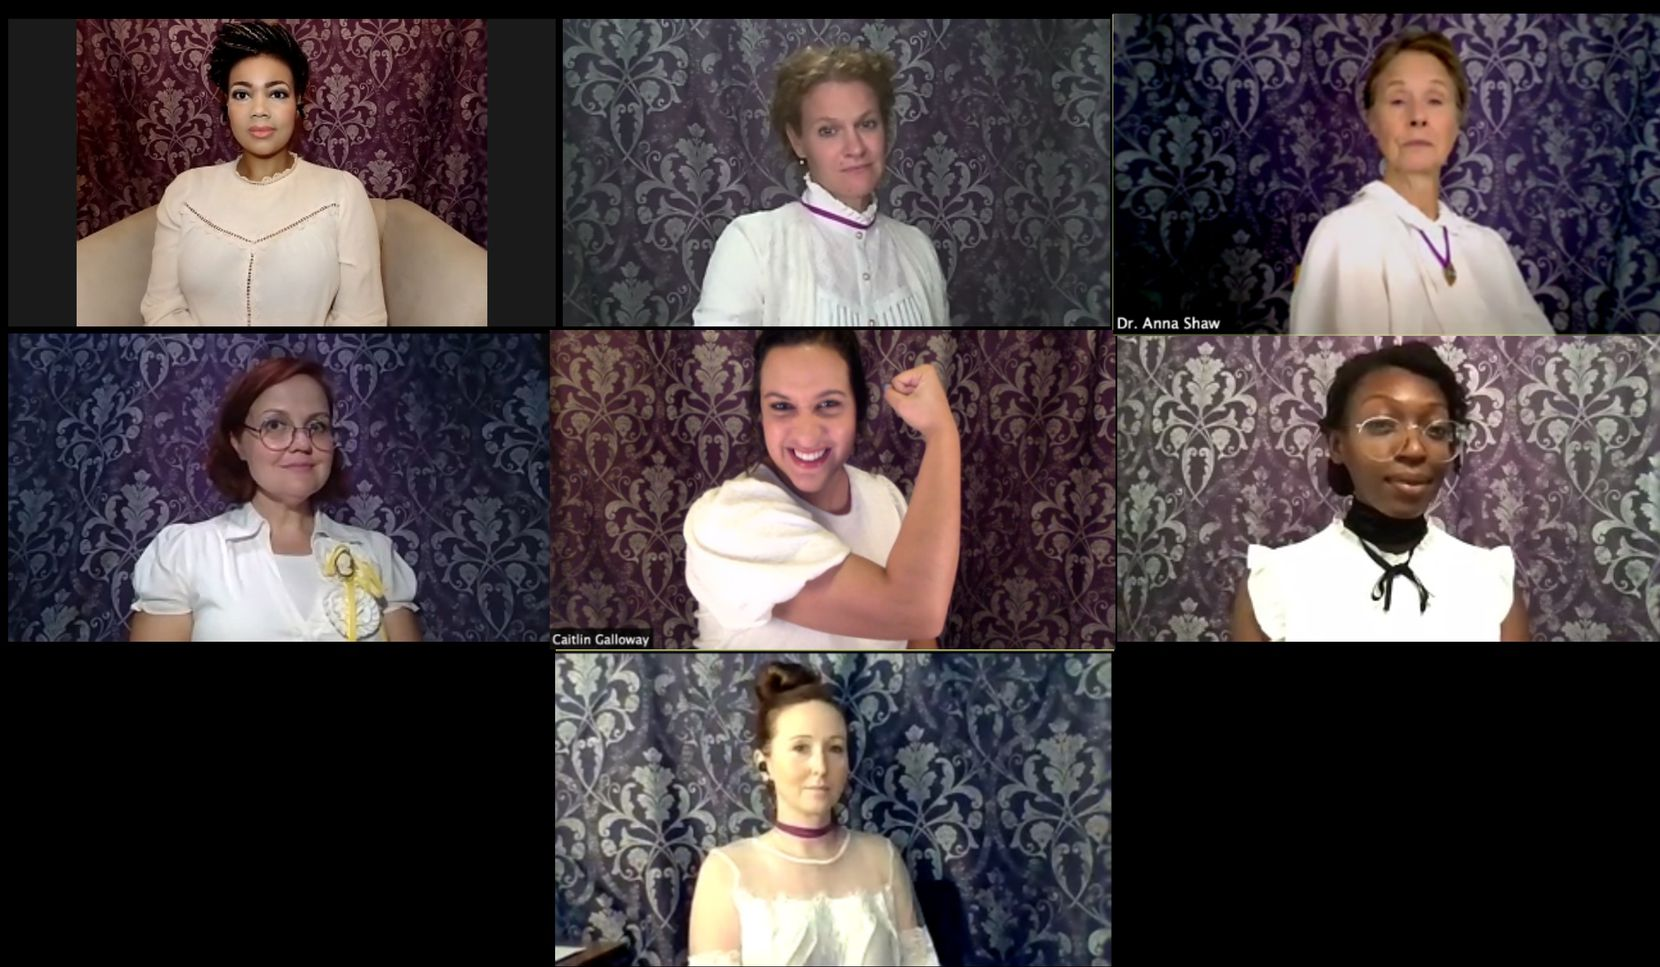 Echo Theatre is streaming a virtual version of 'It's My Party' to celebrate the 100th anniversary of the 19th Amendment. The actresses from left to right, top row to bottom row, are: Octavia Y. Thomas, Megan Haratine, Cindee Mayfield, Lindsay Hayward, Caitlin Chapa, Bwalya Chisanga and Leslie Patrick.